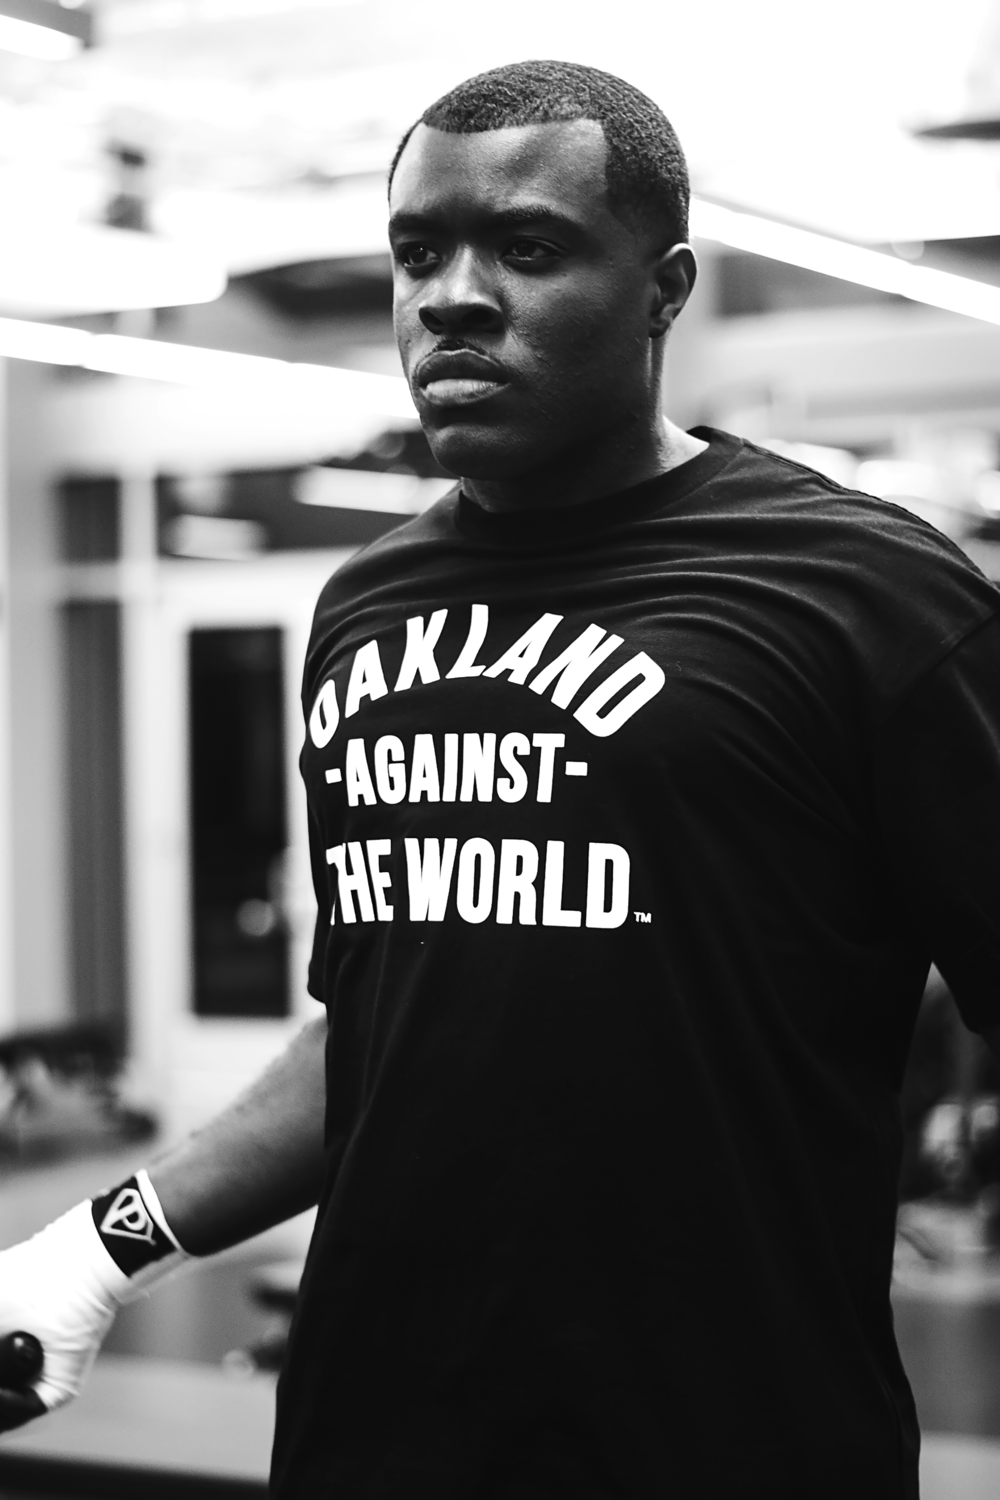 Sky Oak Co_Gallery_Oakland_Against_the_World_black_mens_tee.png